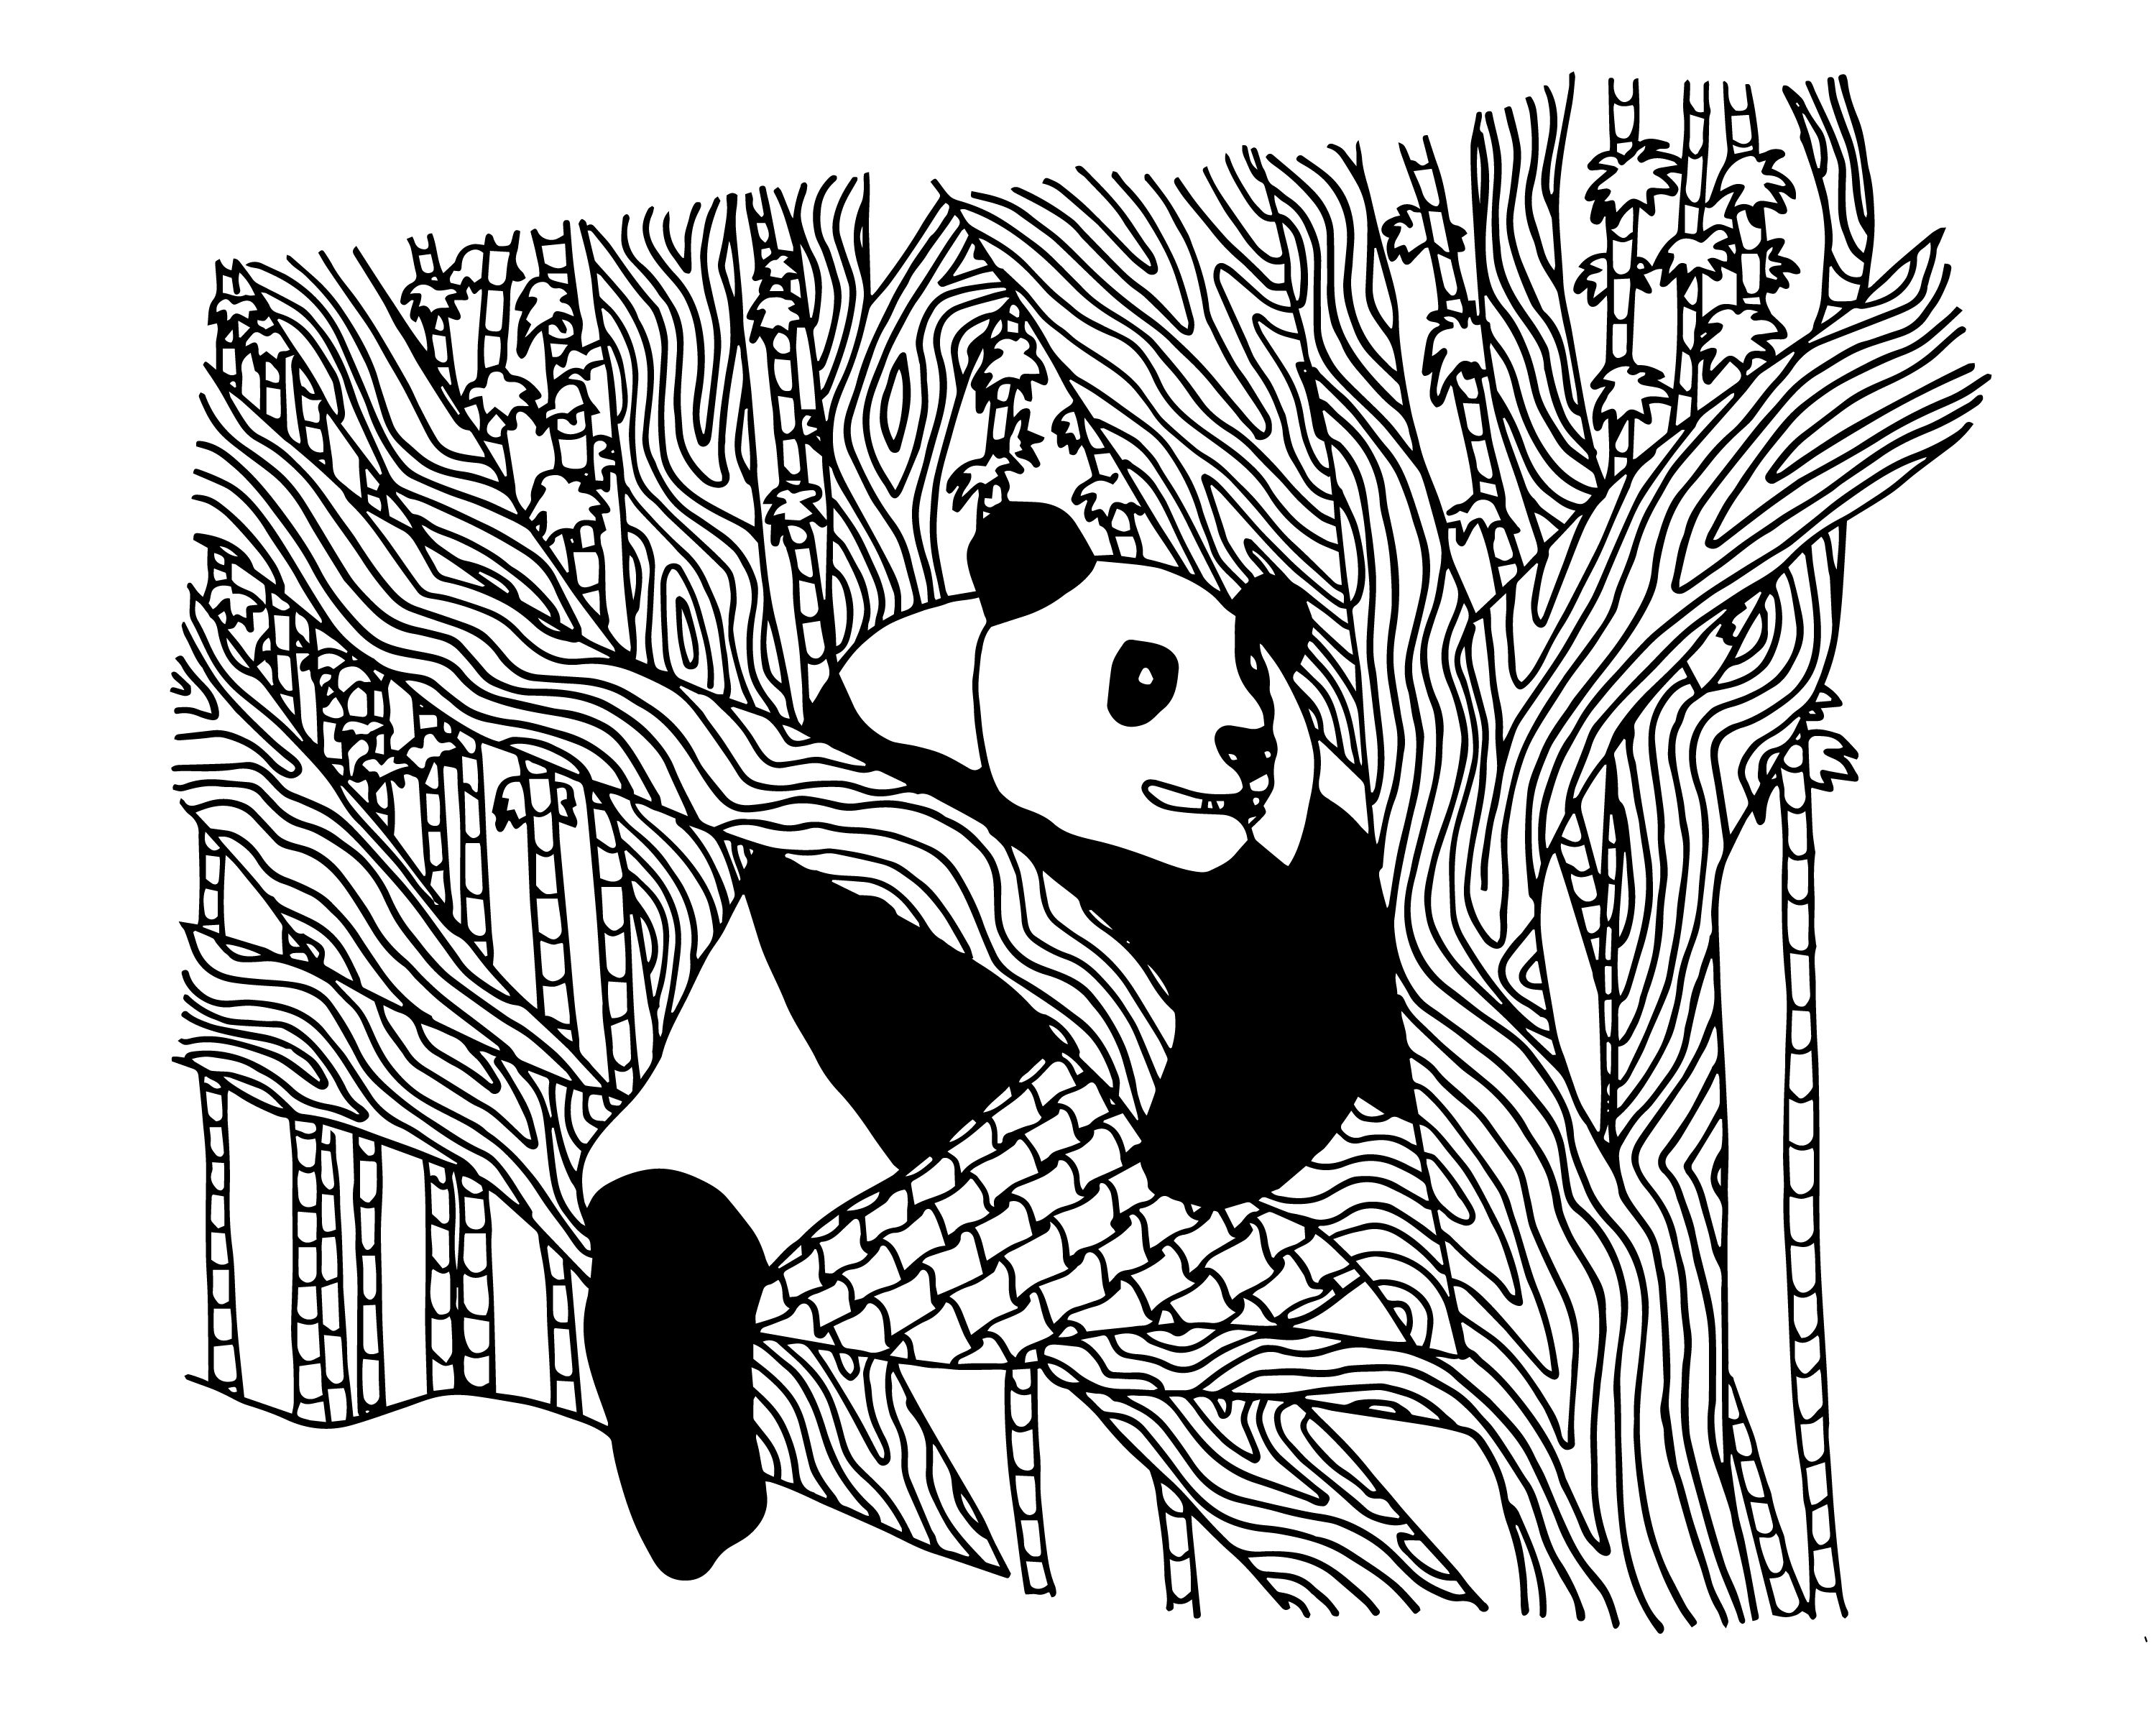 free panda coloring pages for adults - Panda Coloring Page